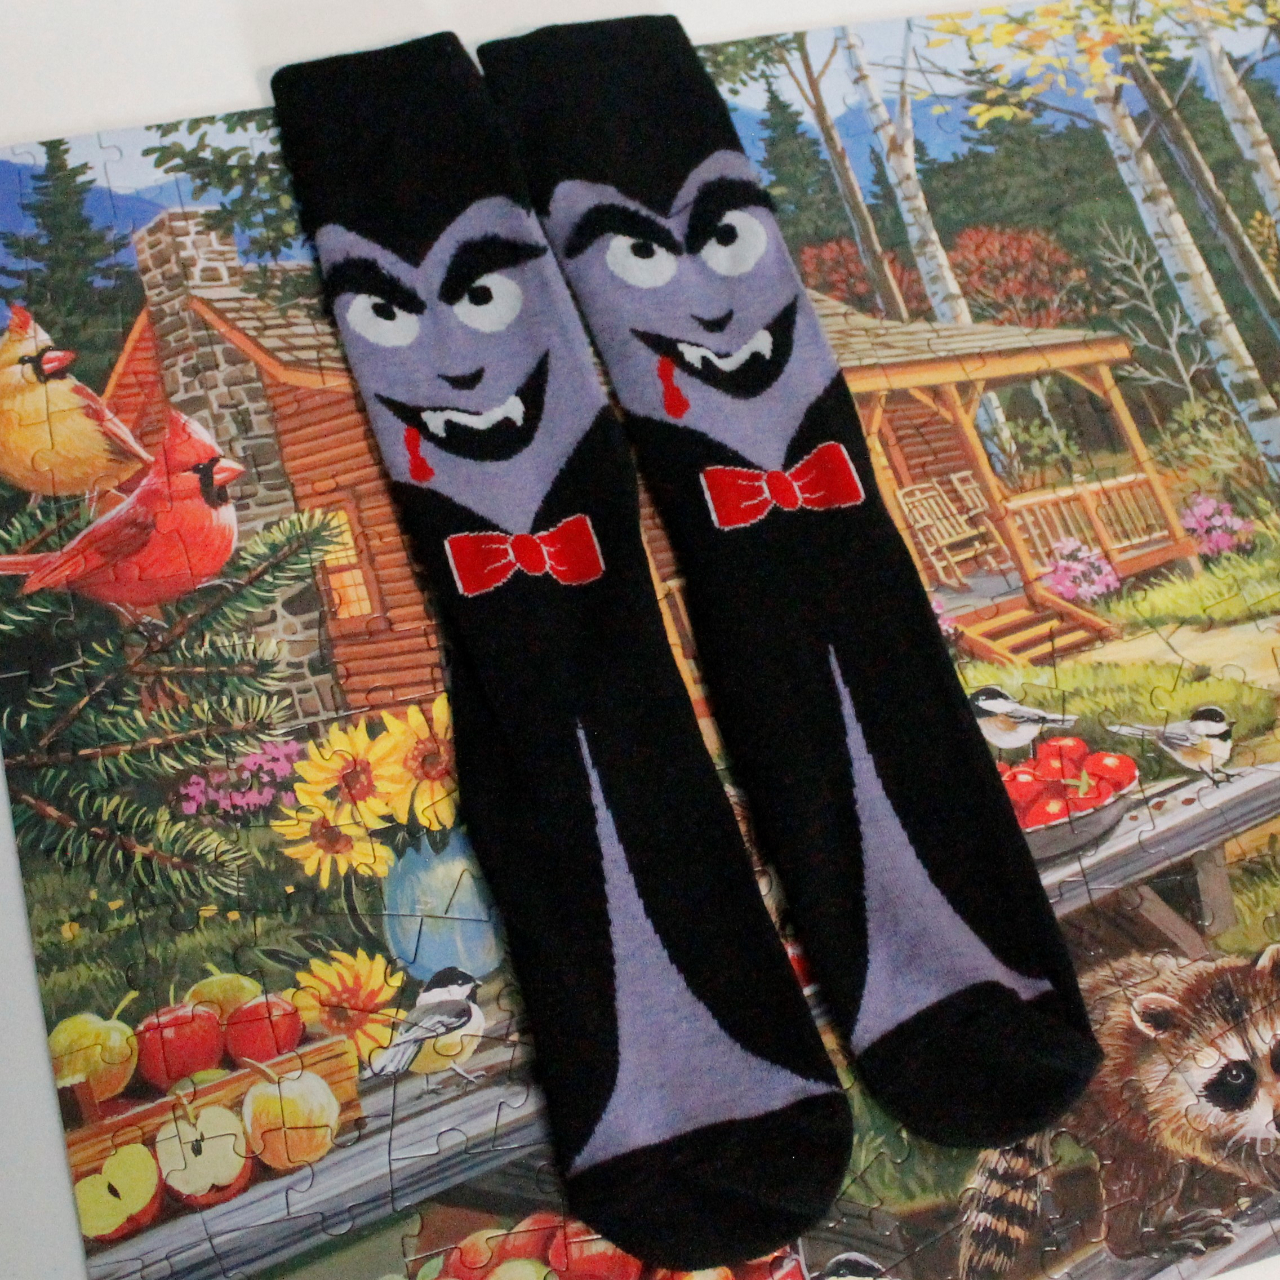 Product Image 1 - vampire socks  never worn, never washed.